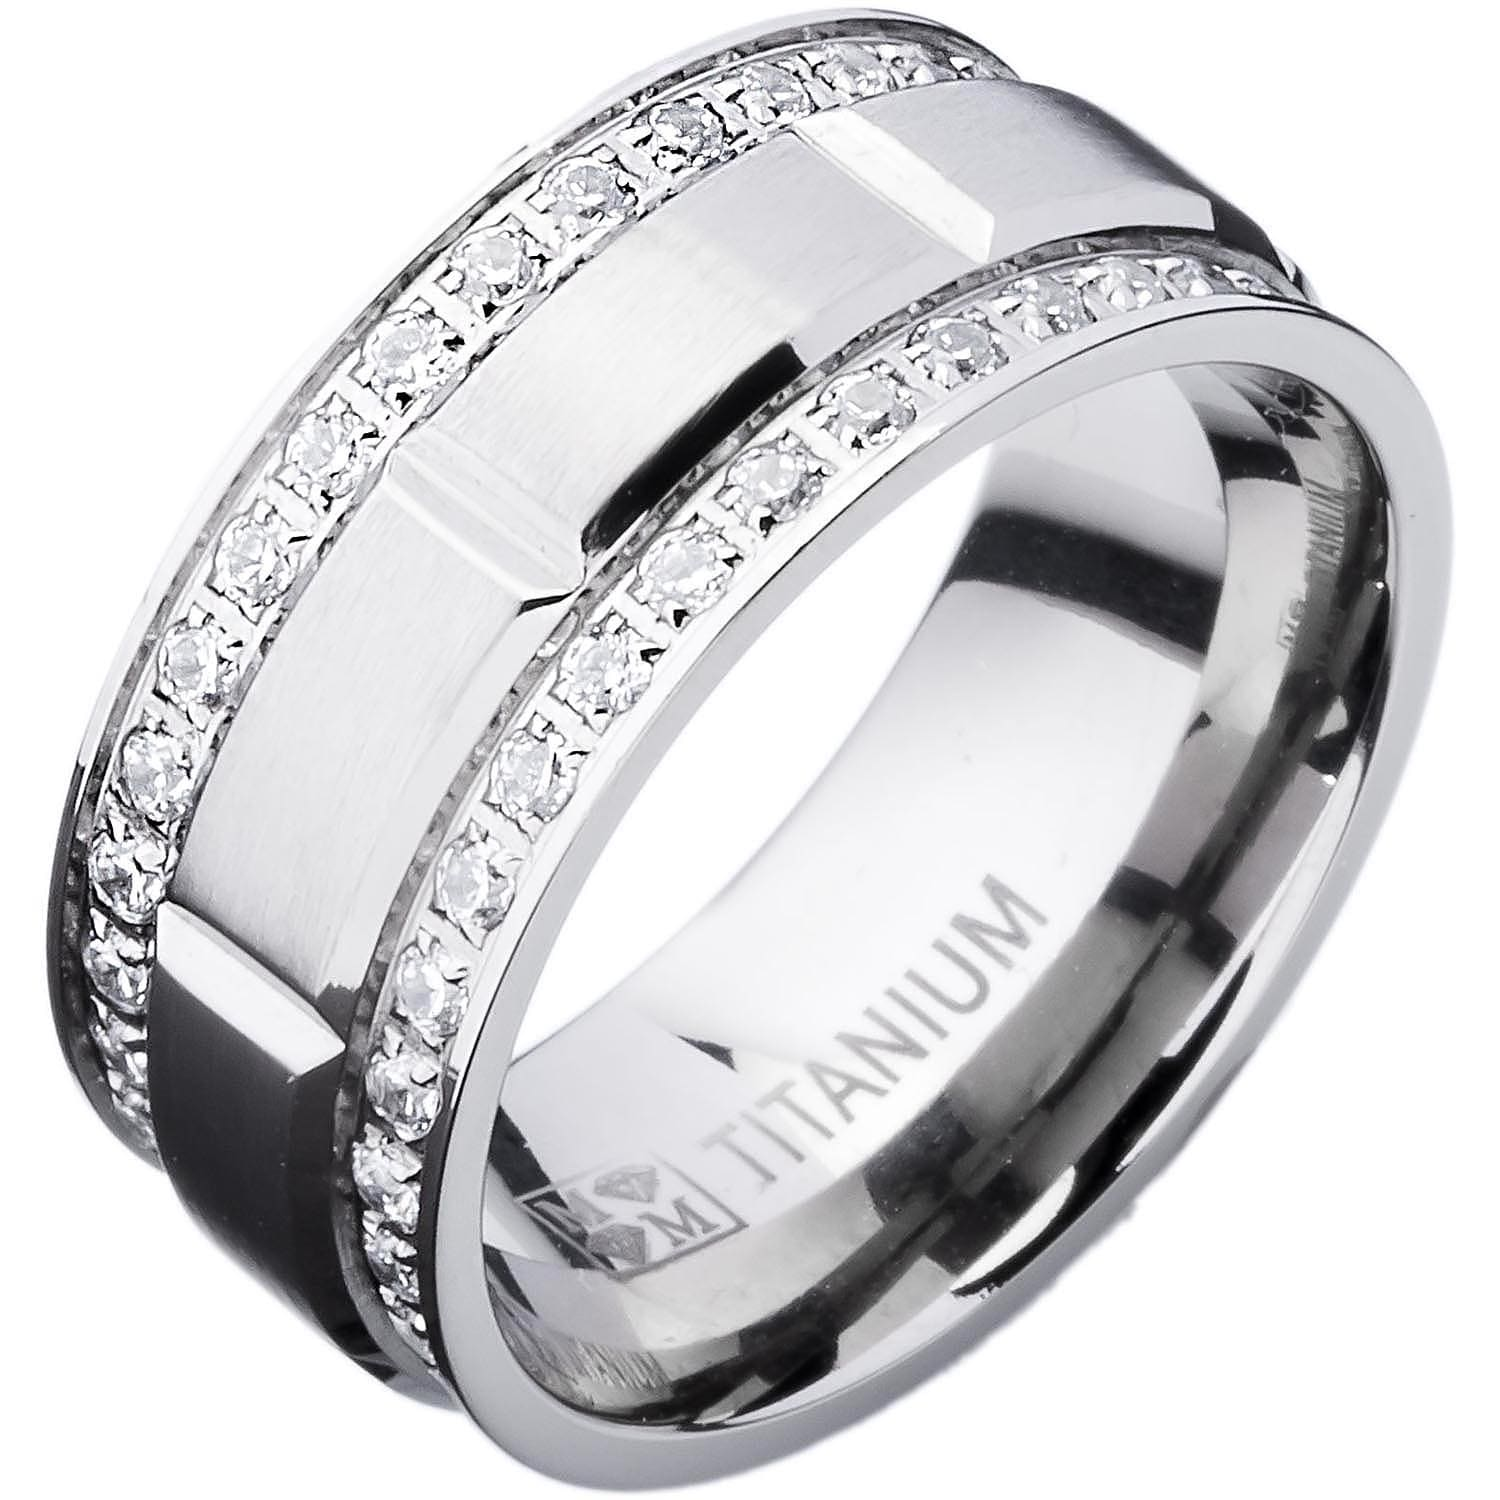 sparkle out ladies masculine unique promise reserved mens diamond the that this rings for gentlemen is says engagement check wedding who